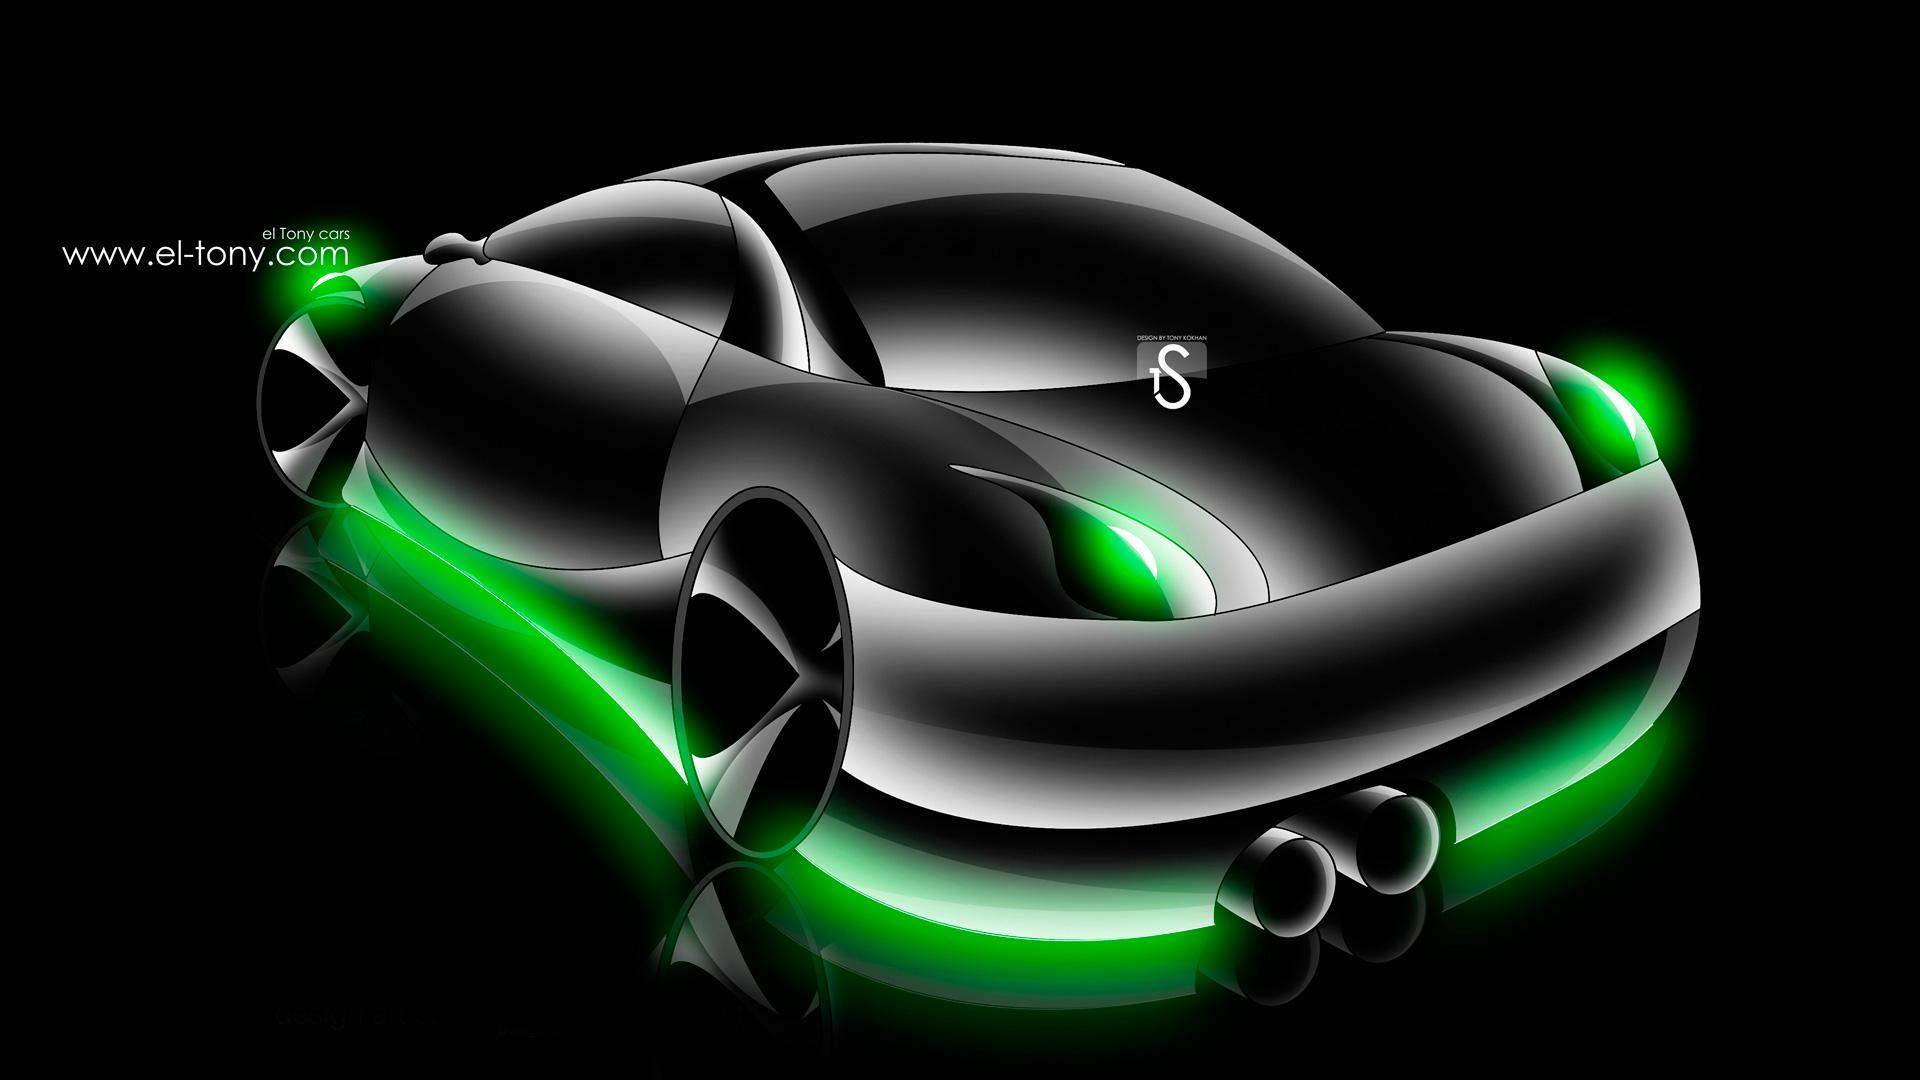 3d Neon Car Wallpaper Hd For Android Apk Download